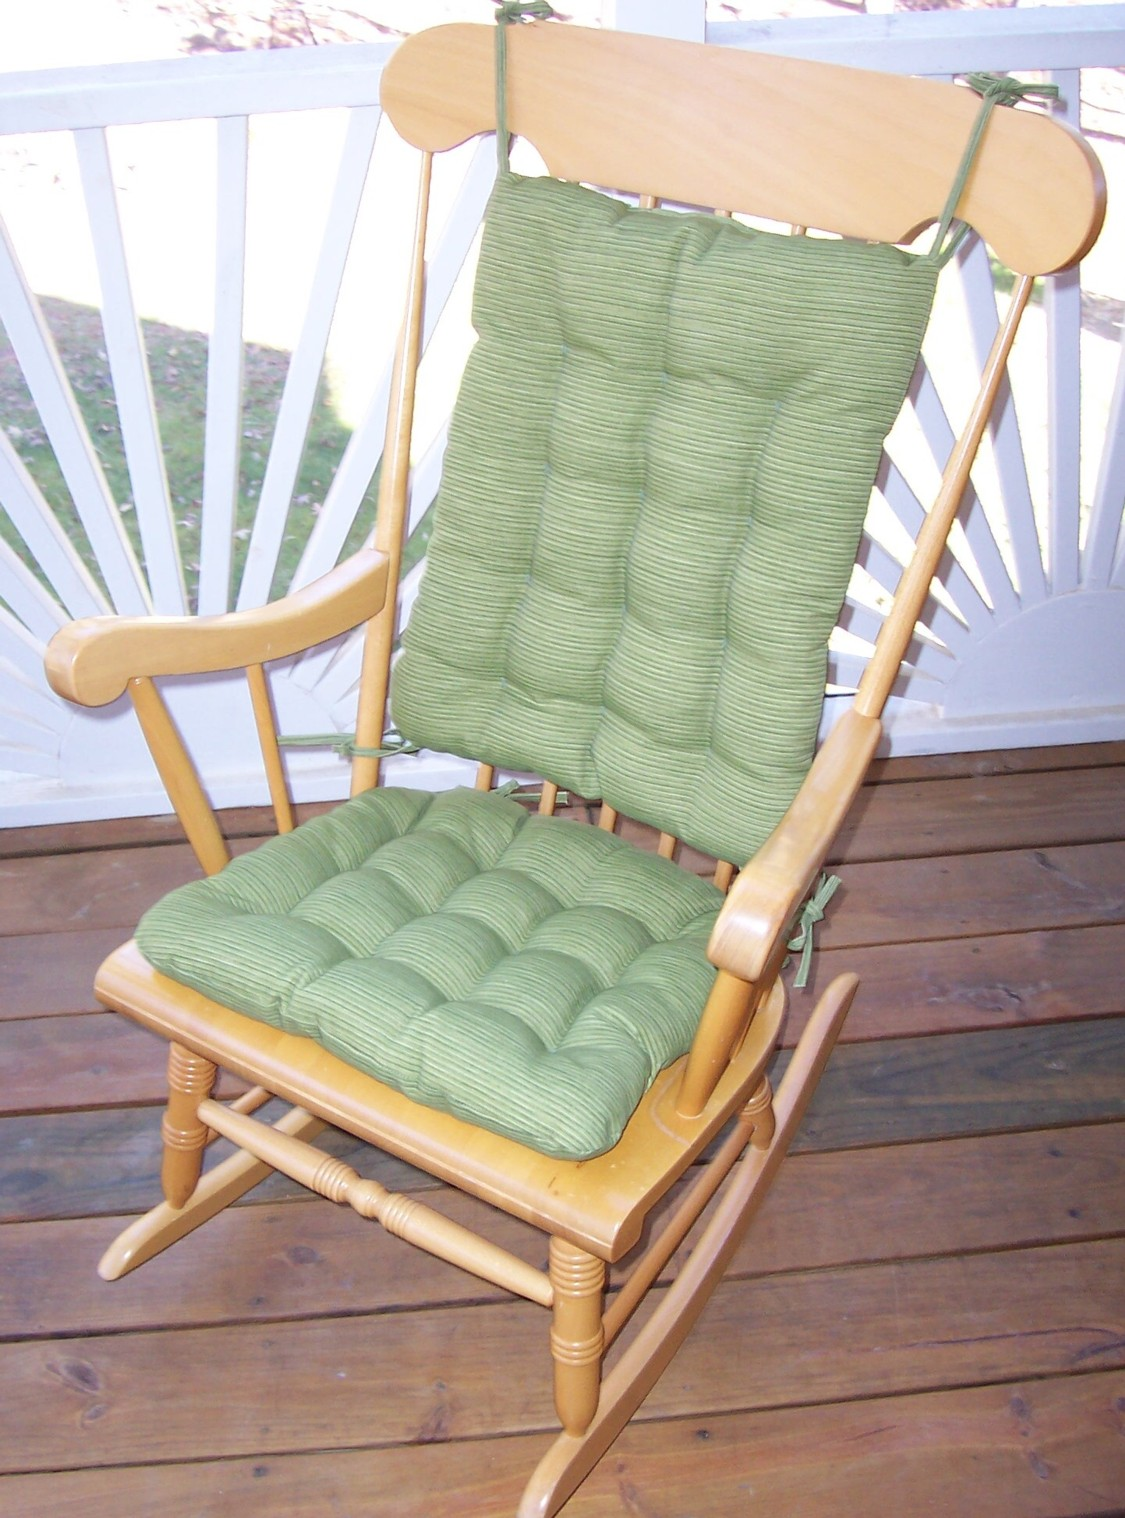 Rocking Chair With Cushions Rocking Chair Cushion Sets And More Clearance